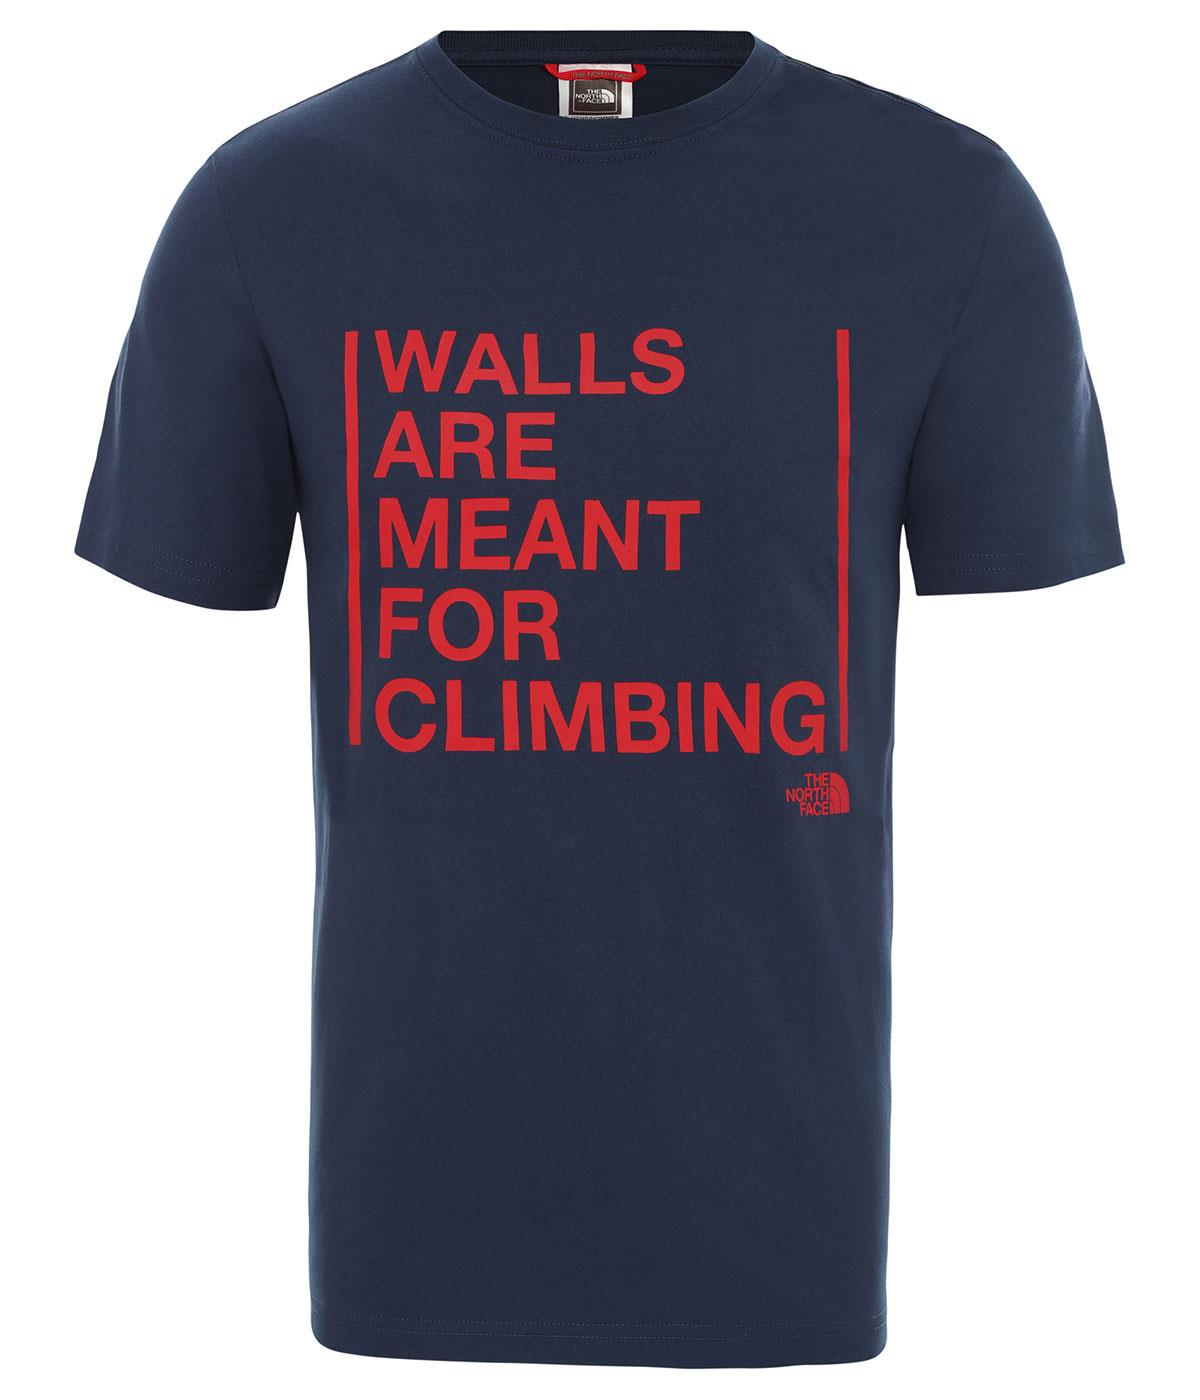 The Northface Erkek S/S WALLS ARE FOR CLIMBING TEE-EU NF0A3S3SN4L1